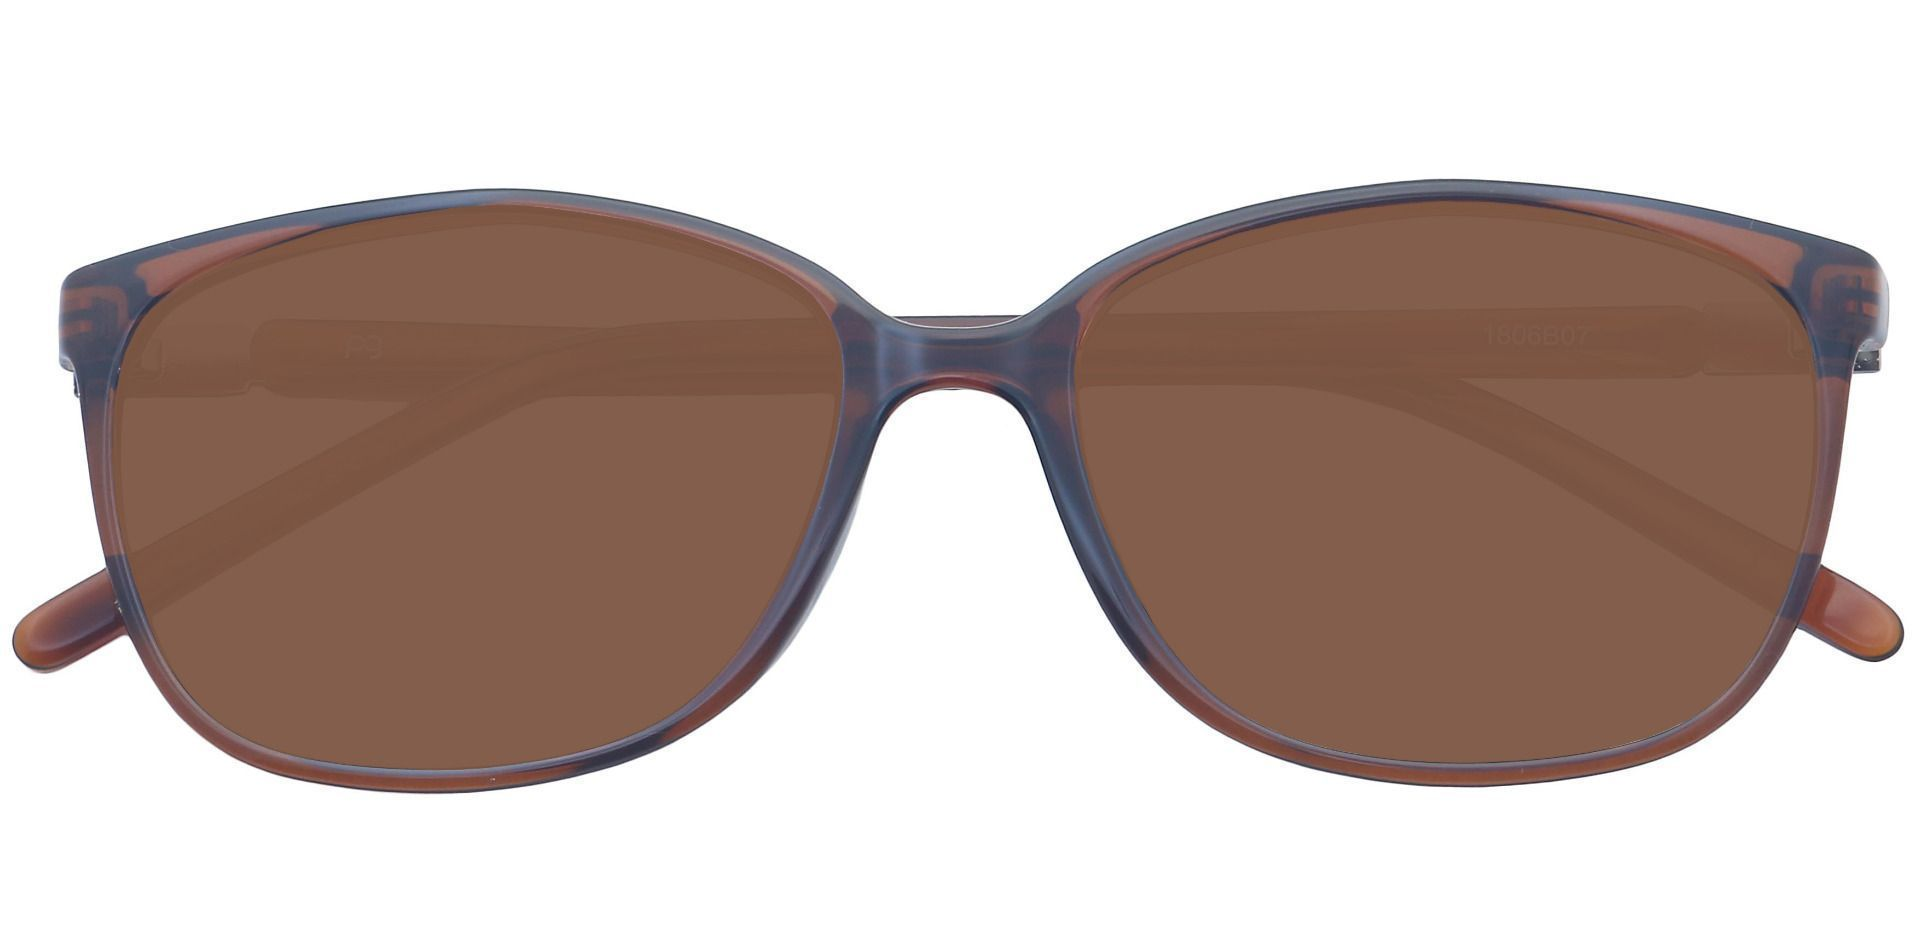 Archie Square Prescription Sunglasses - Brown Frame With Brown Lenses